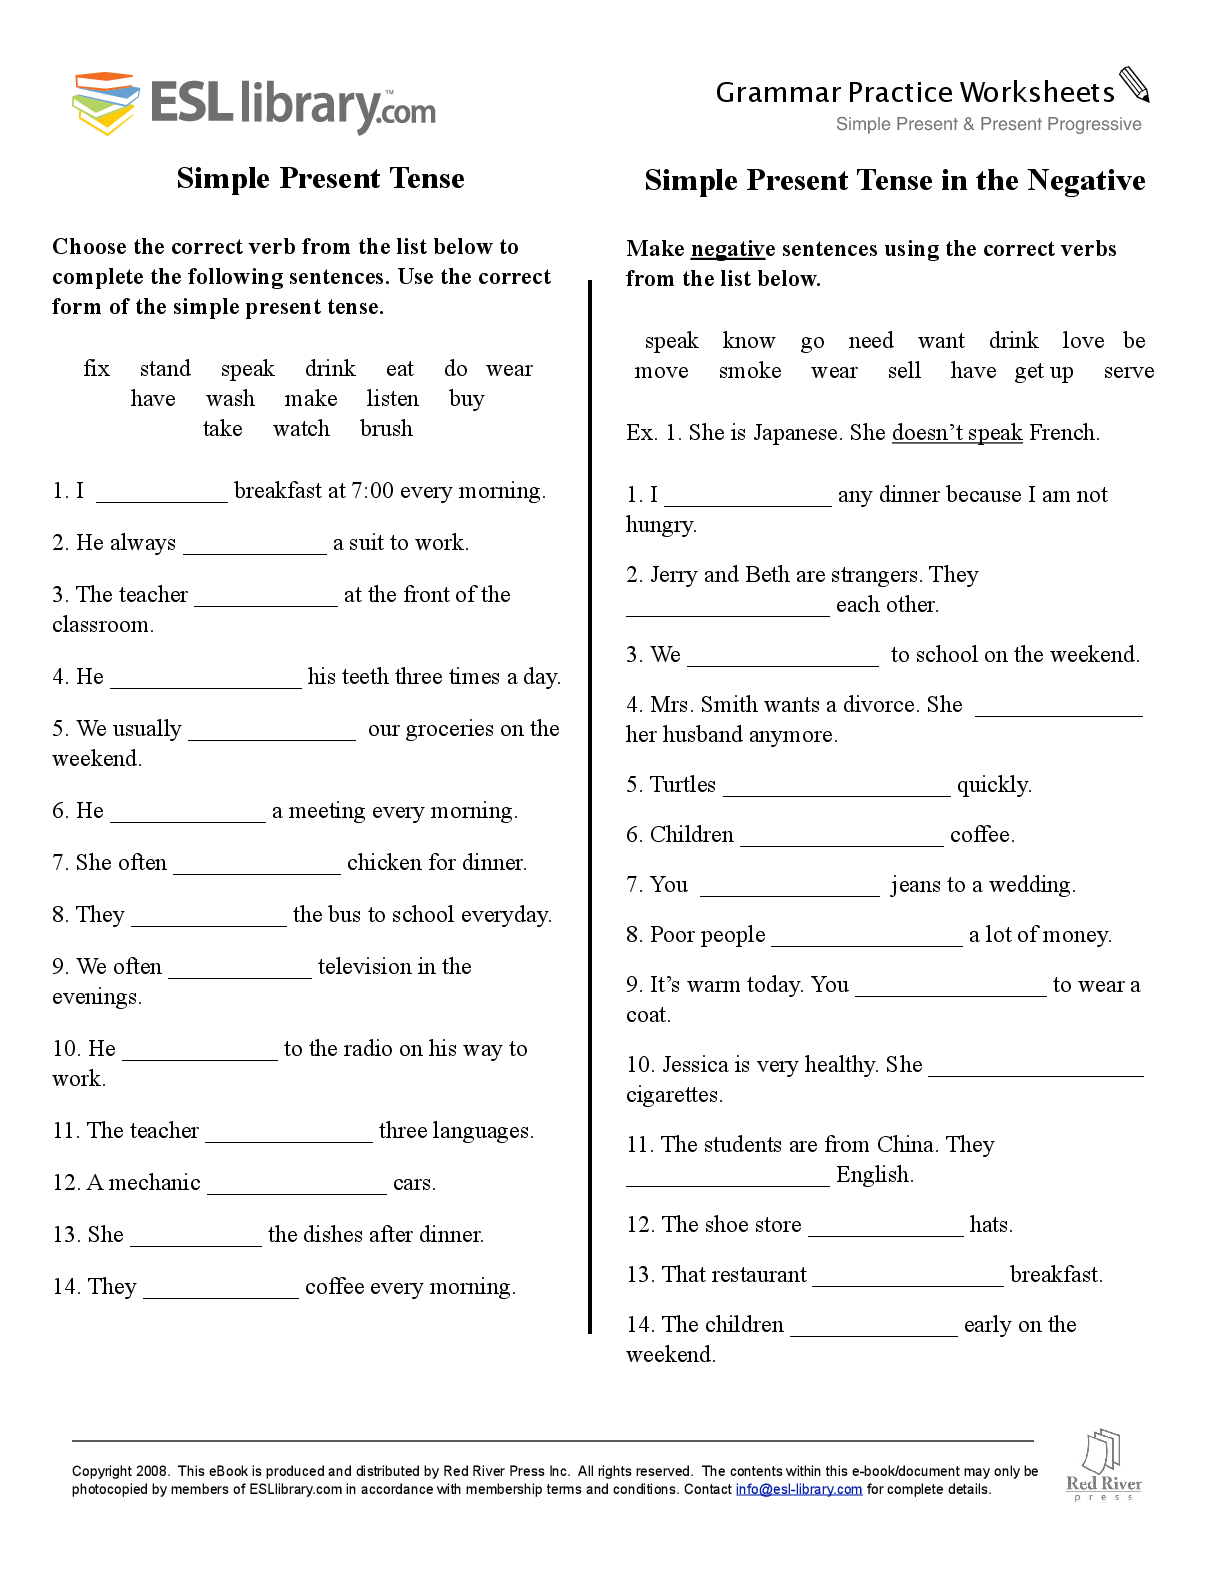 Simple Future Tense Worksheets With Answers